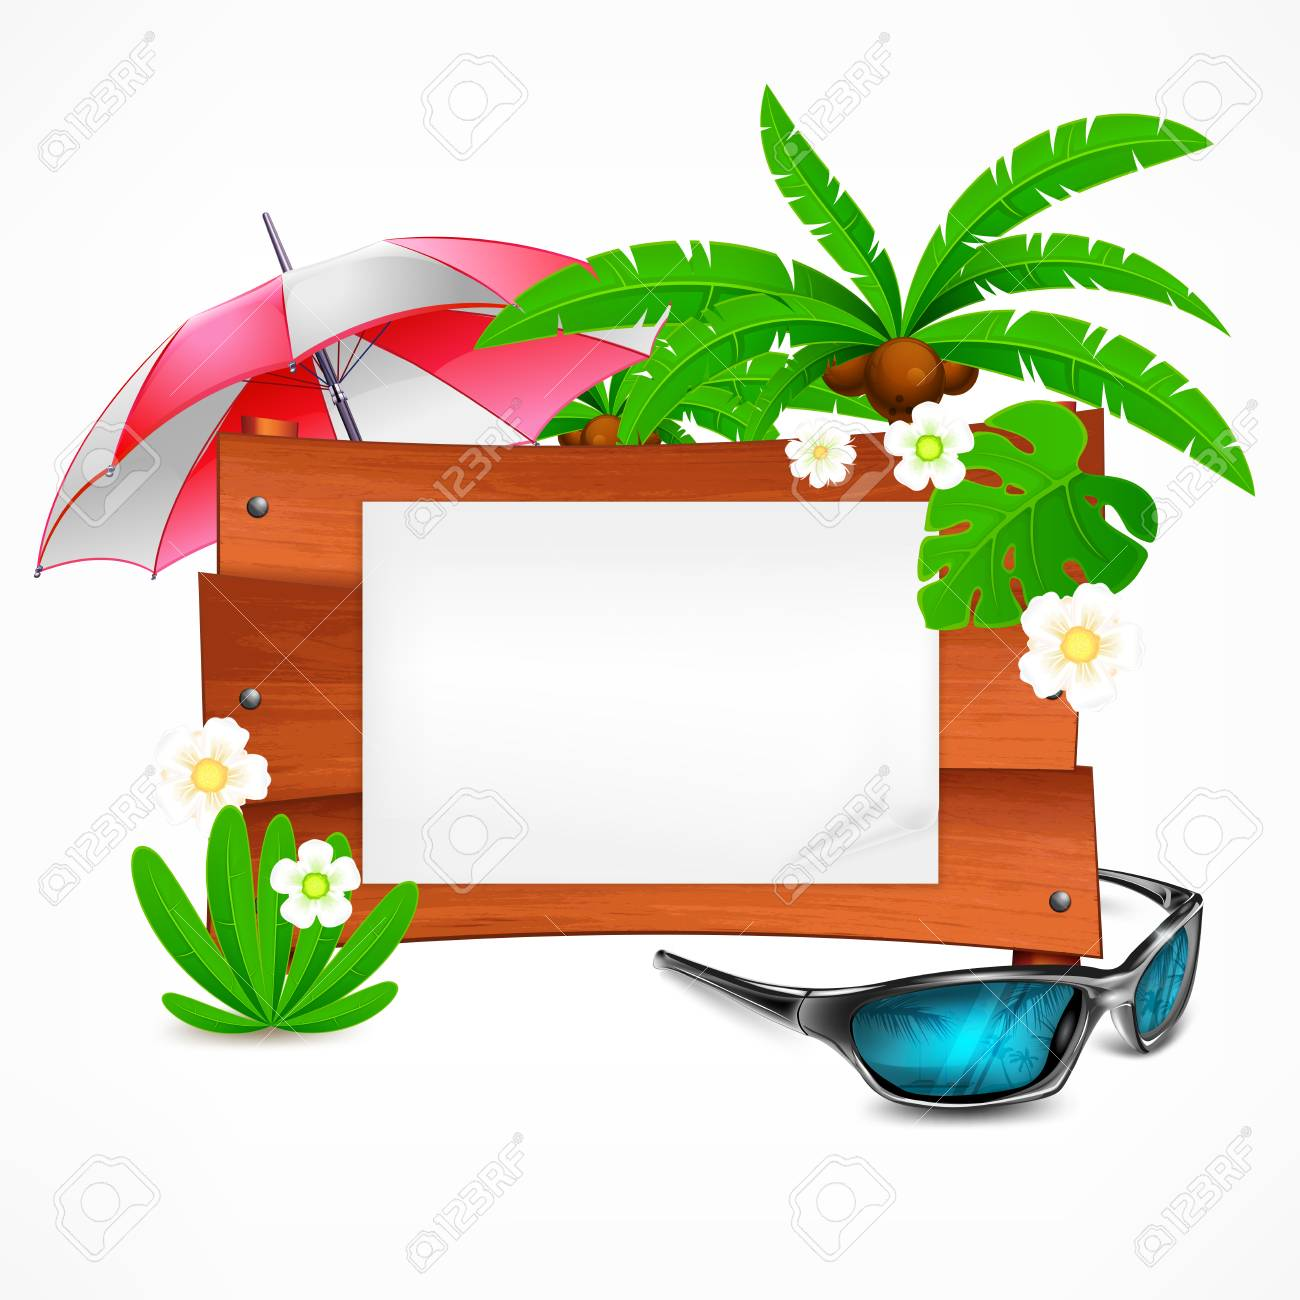 Summer Wooden Sign Board On White Plank For Notice Vector Illustration Royalty Free Cliparts Vectors And Stock Illustration Image 136597623